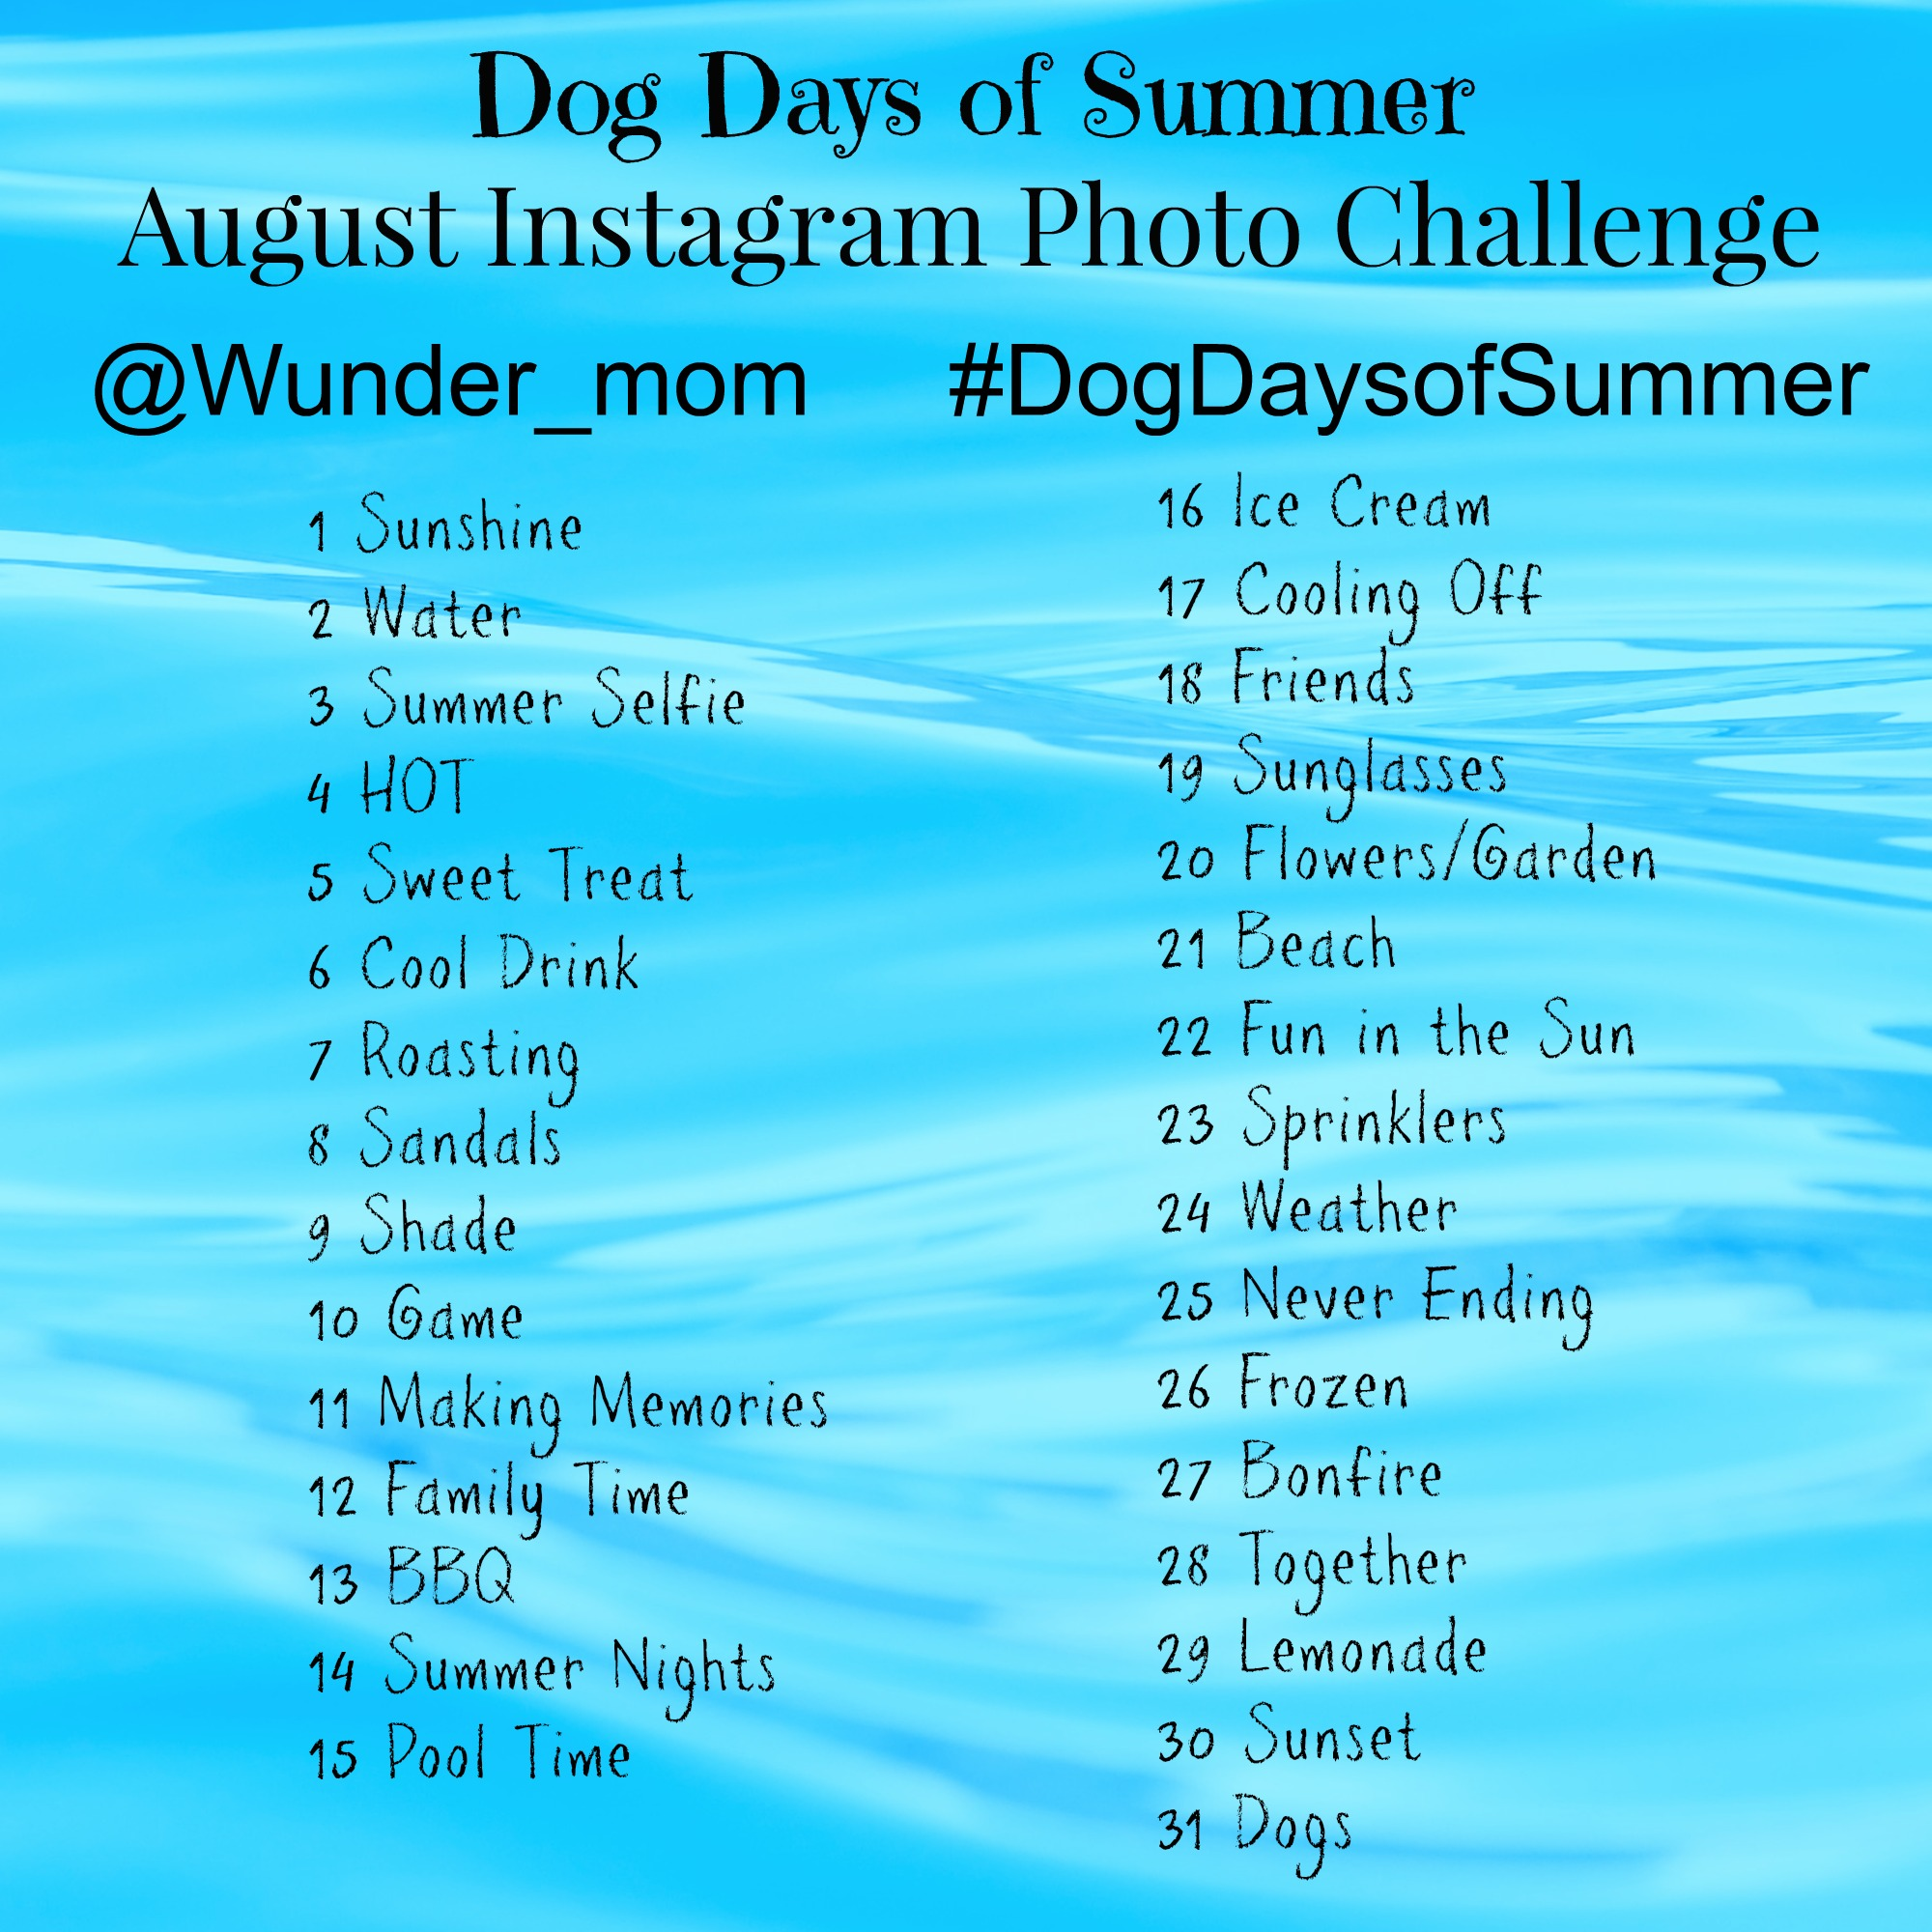 August Instagram Photo Challenge~ Dog Days of Summer